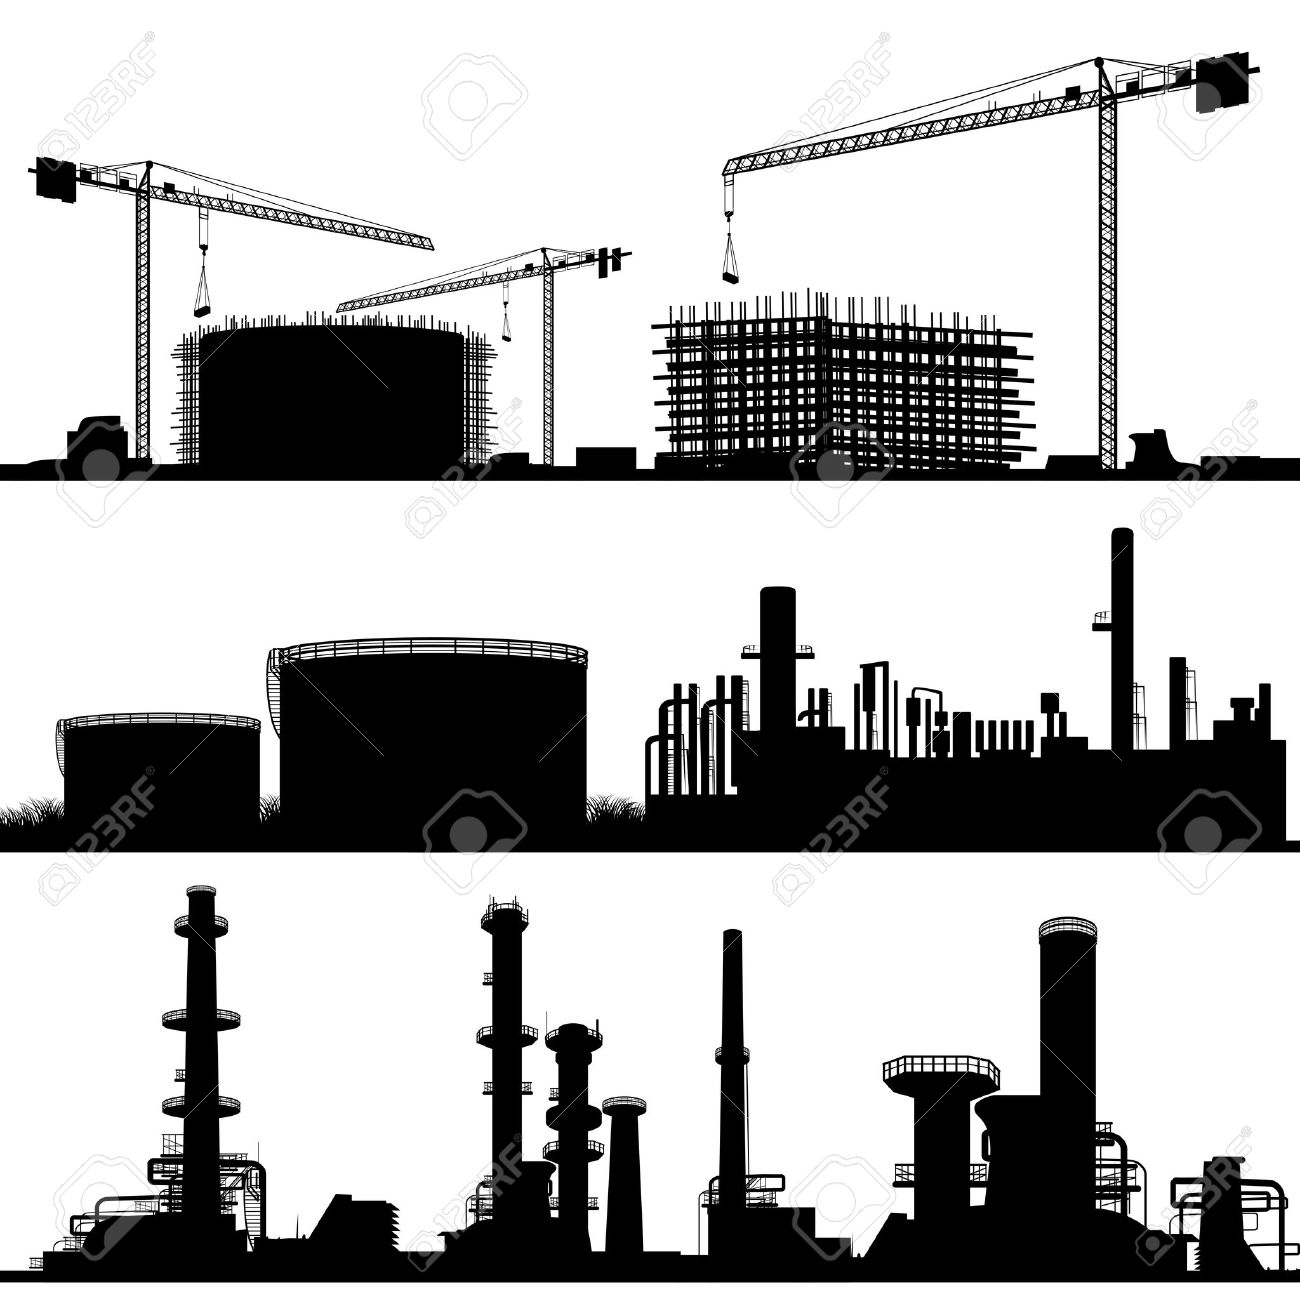 City construction site clipart - Clipground